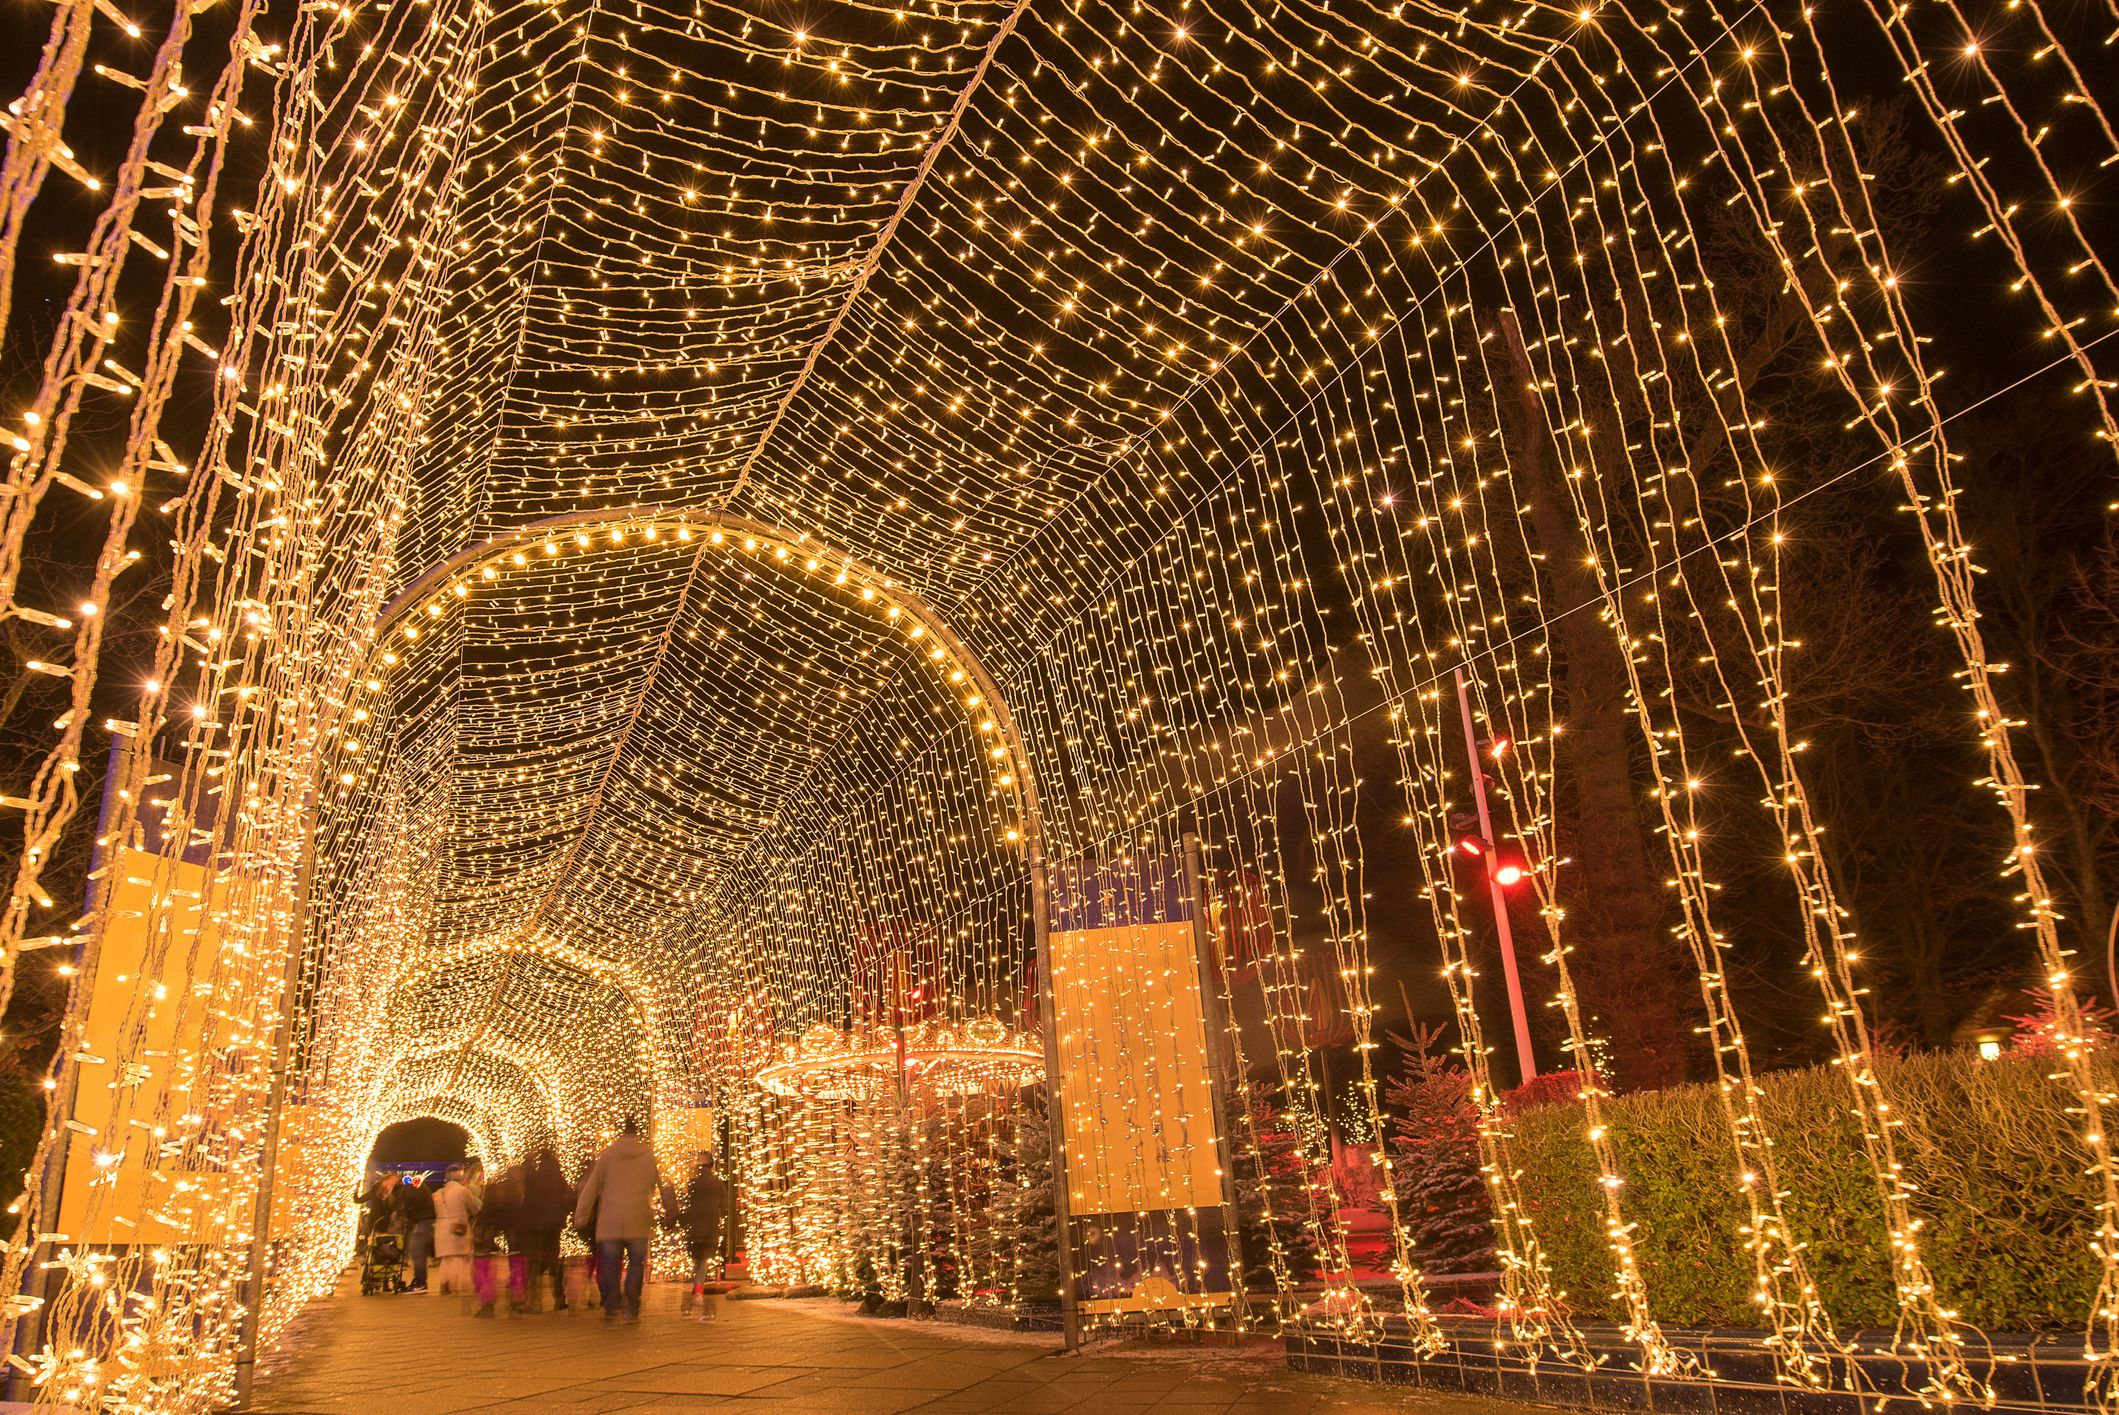 The entrance to a large Christmas market in Denmark